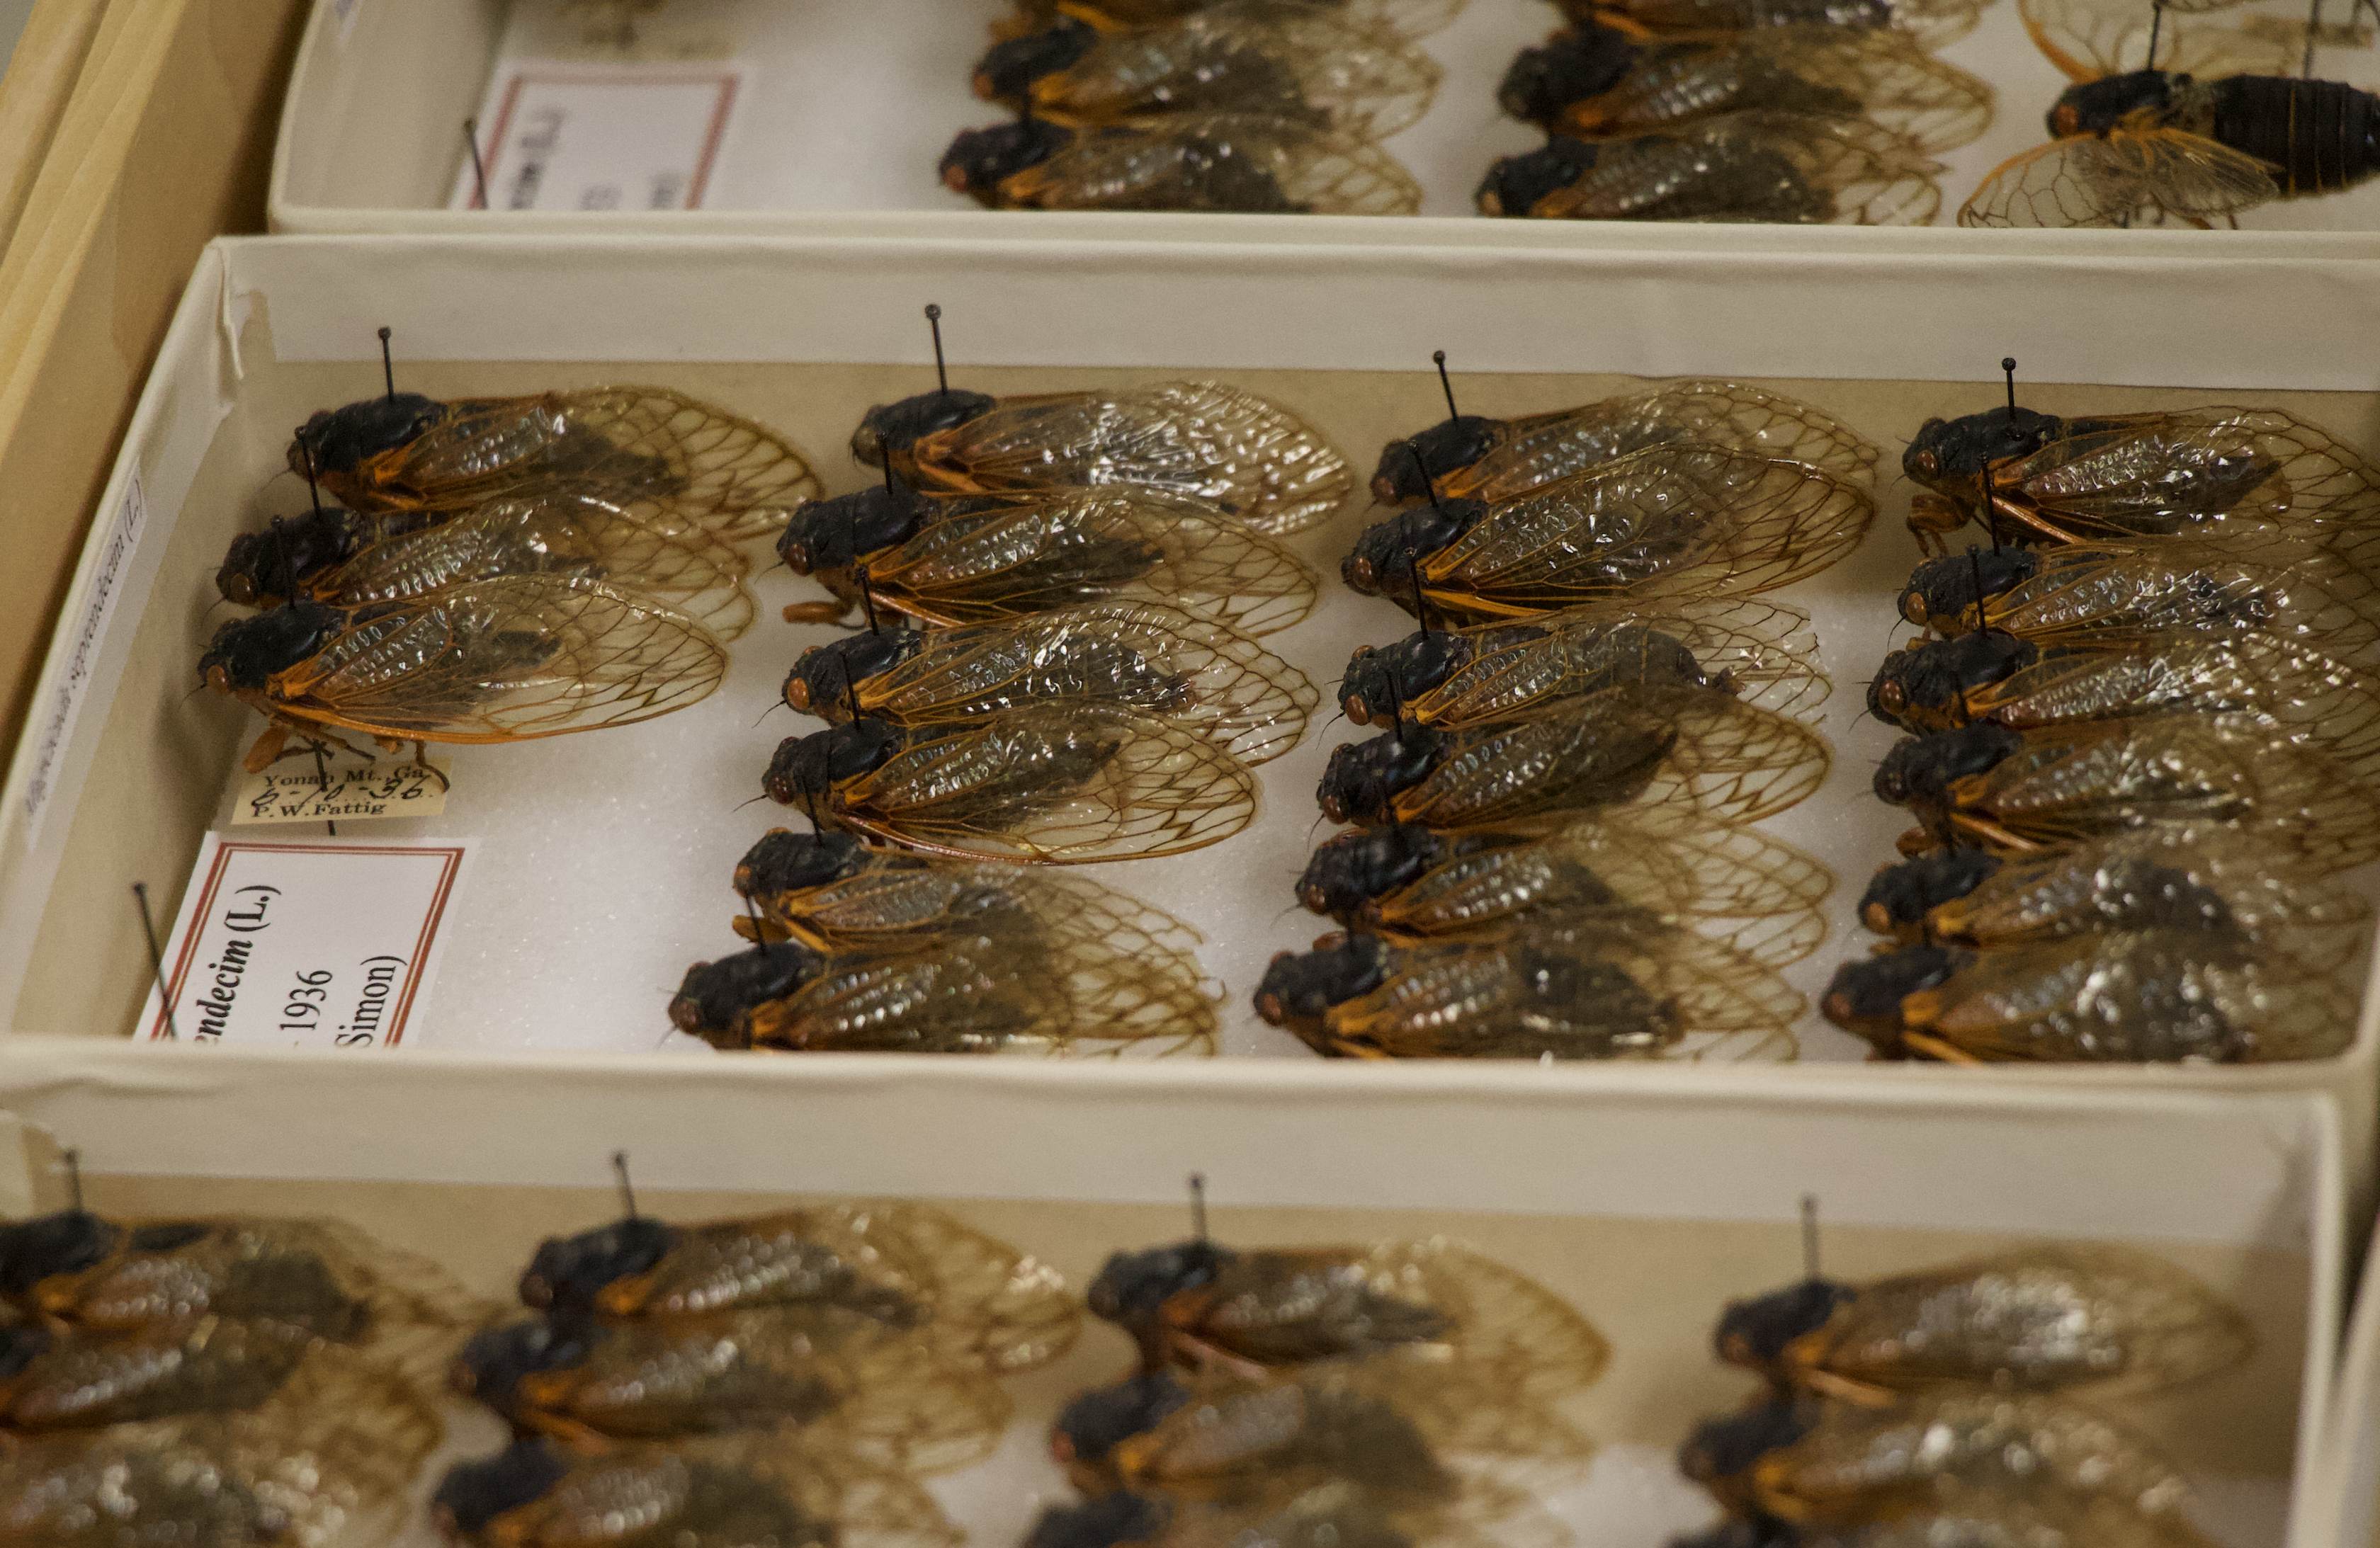 A brood of 17-year cicadas displayed in a collection at the Georgia Museum of Natural History, located on the UGA campus.